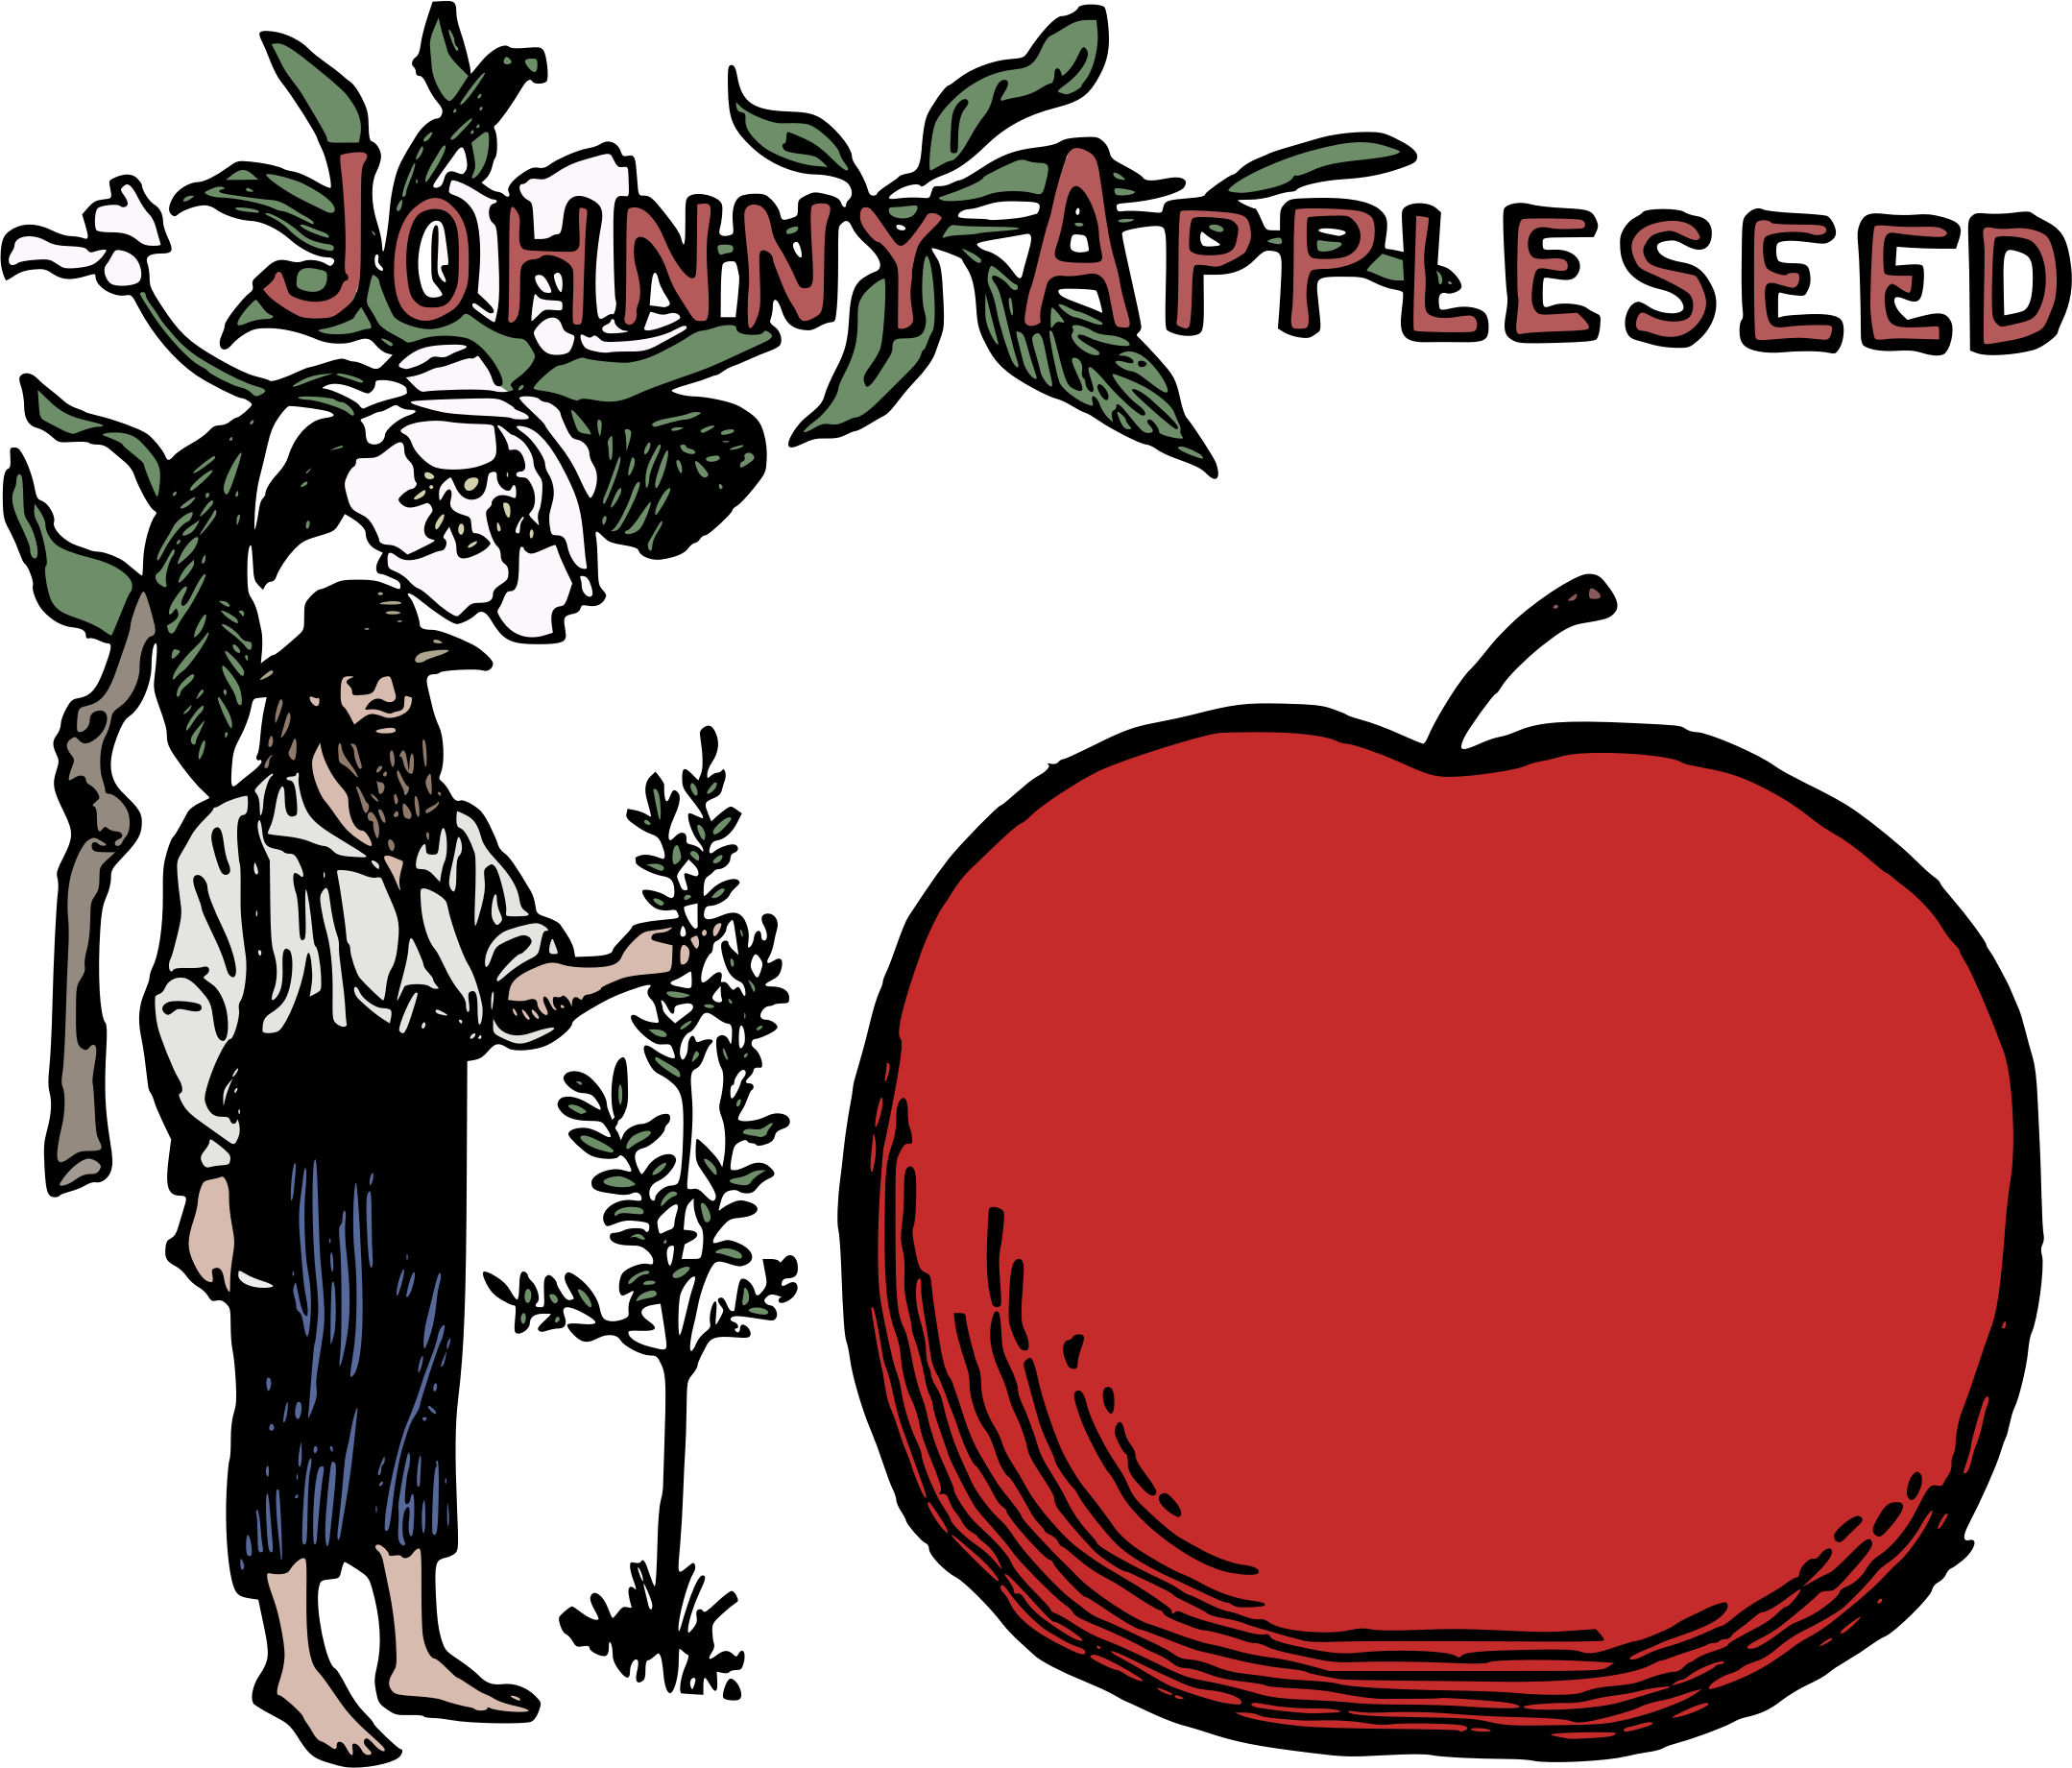 Johnny apple seed clipart banner transparent stock Clipart - Johnny Appleseed Colour banner transparent stock